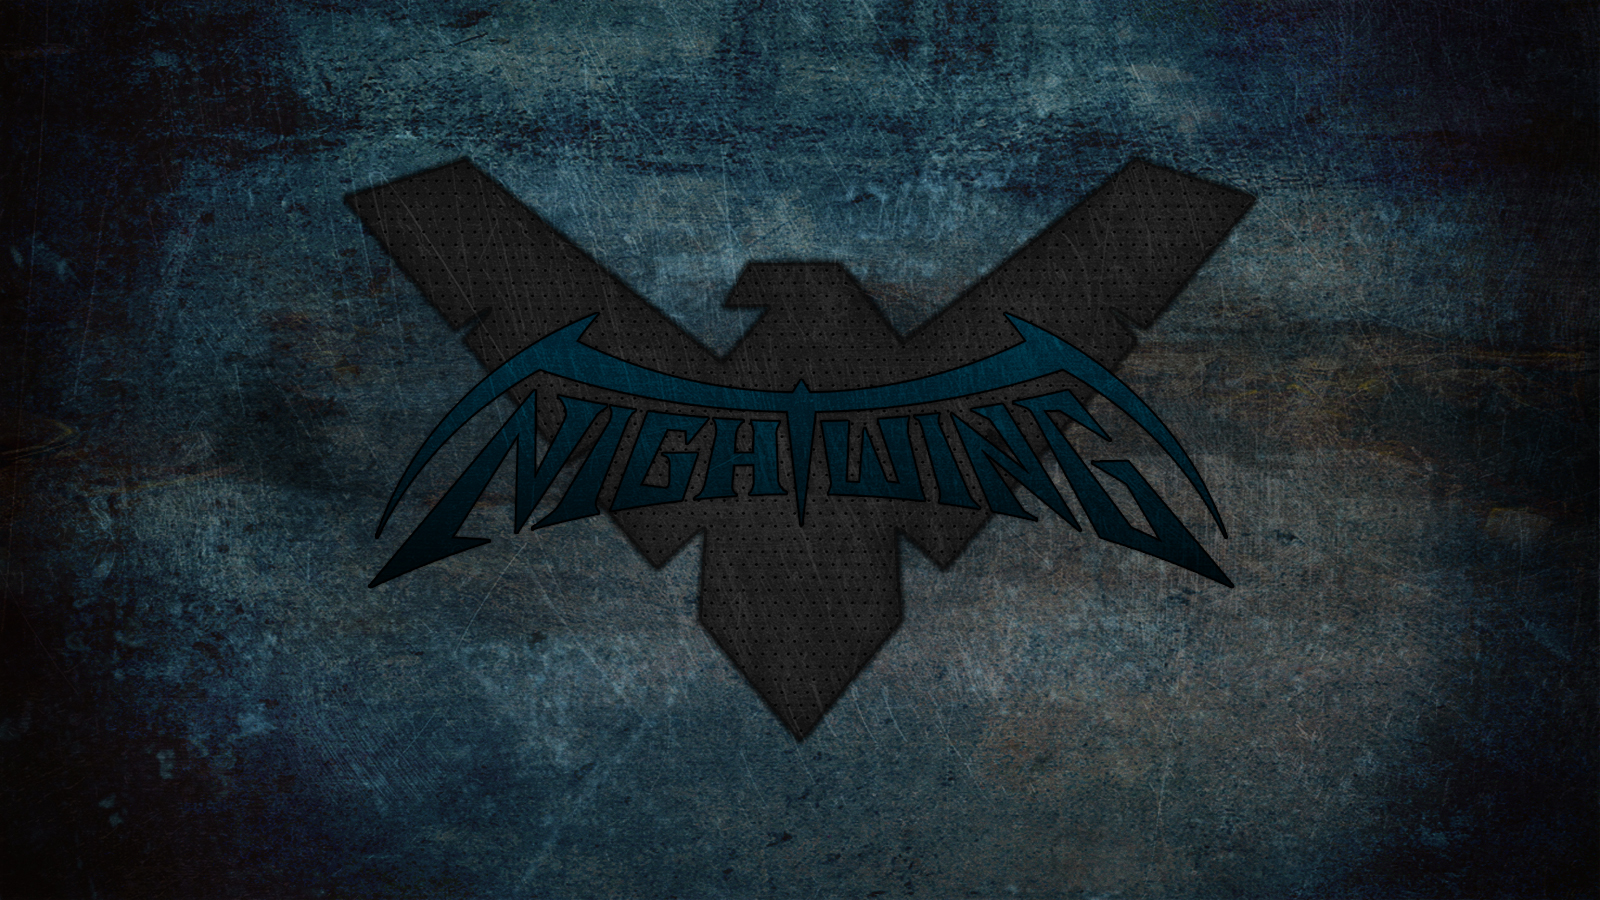 Nightwing Symbol Wallpaper Nightwing 1600x900